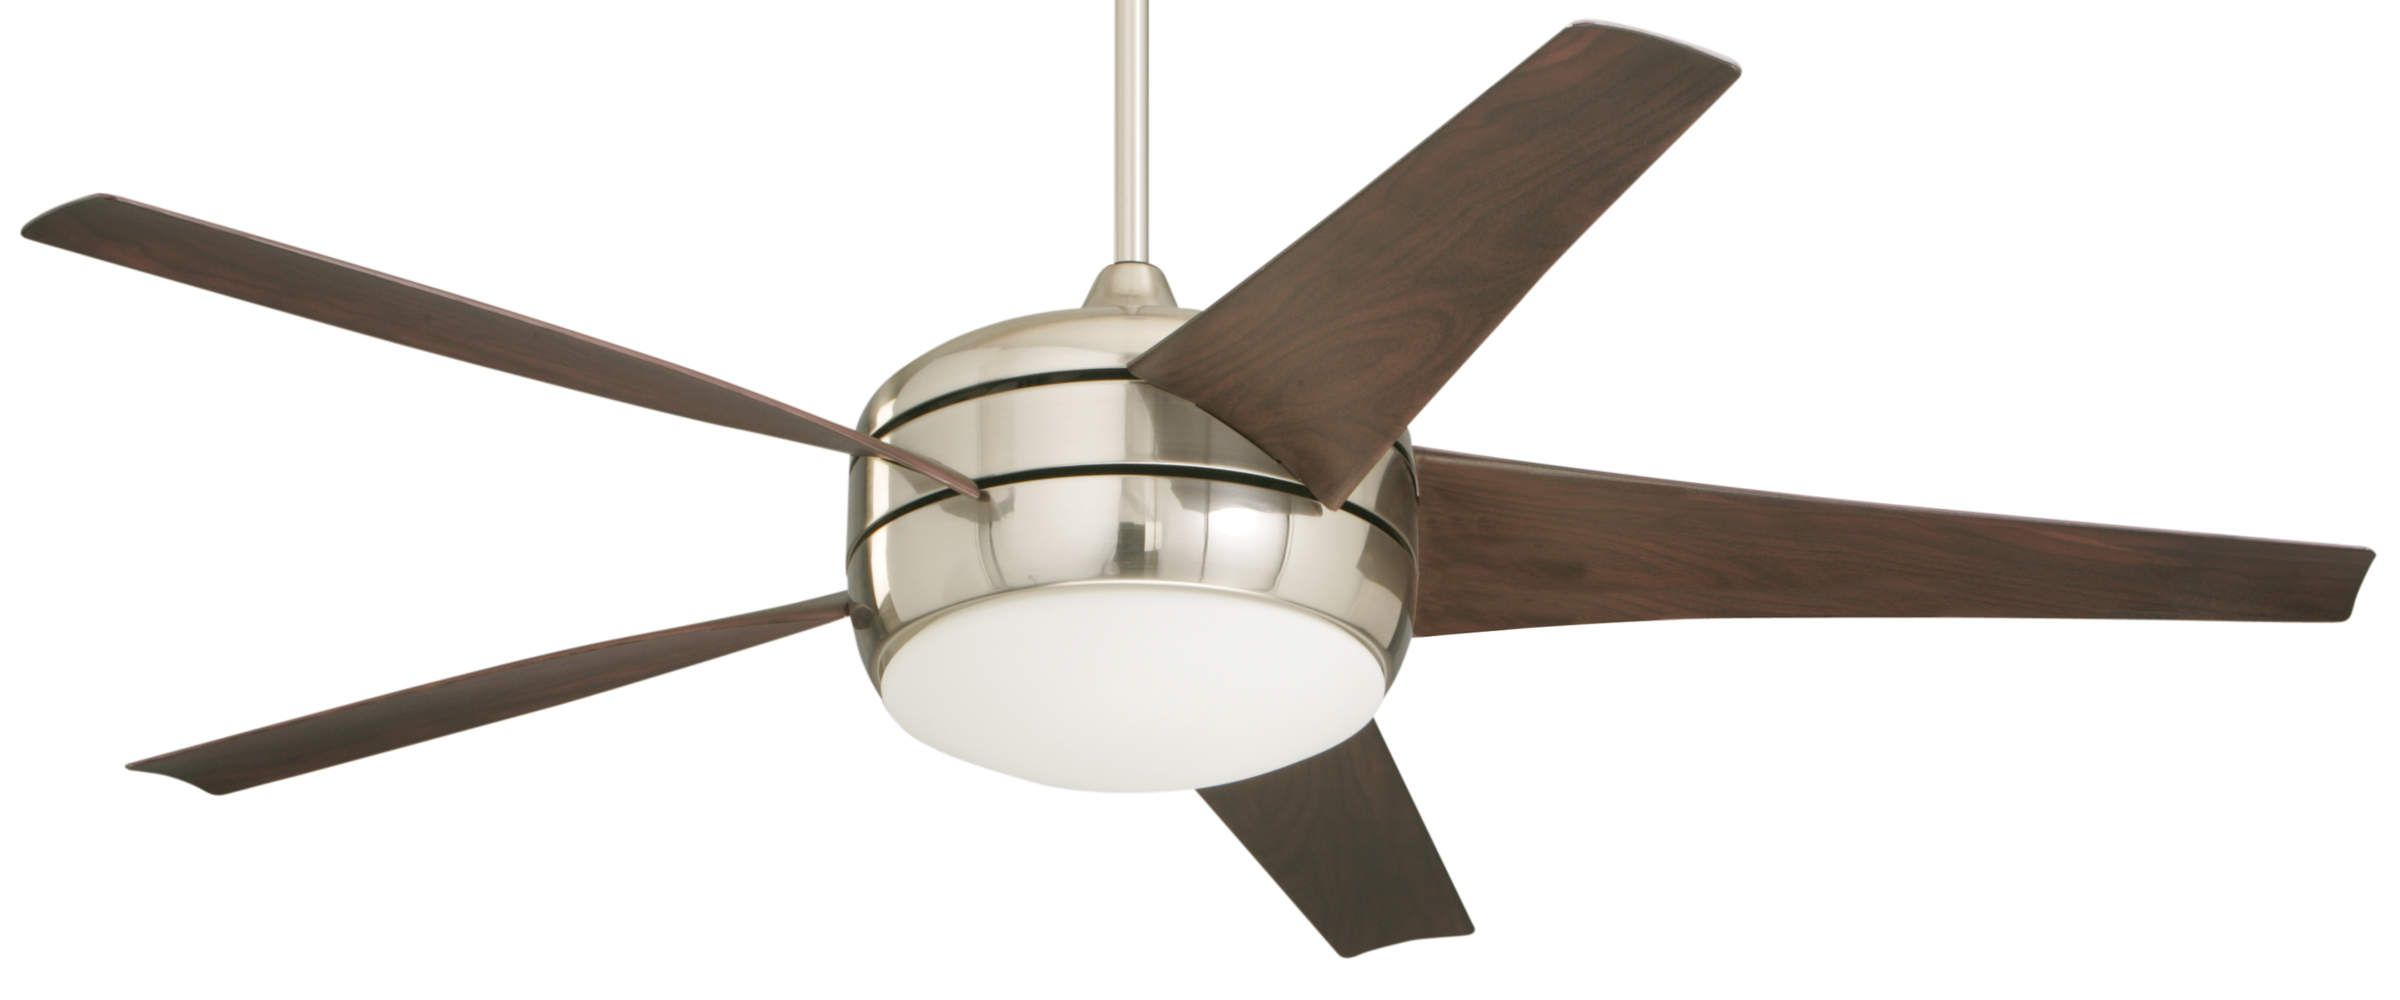 Shown in picture Emerson Ceiling Fan Model CF955BS click on